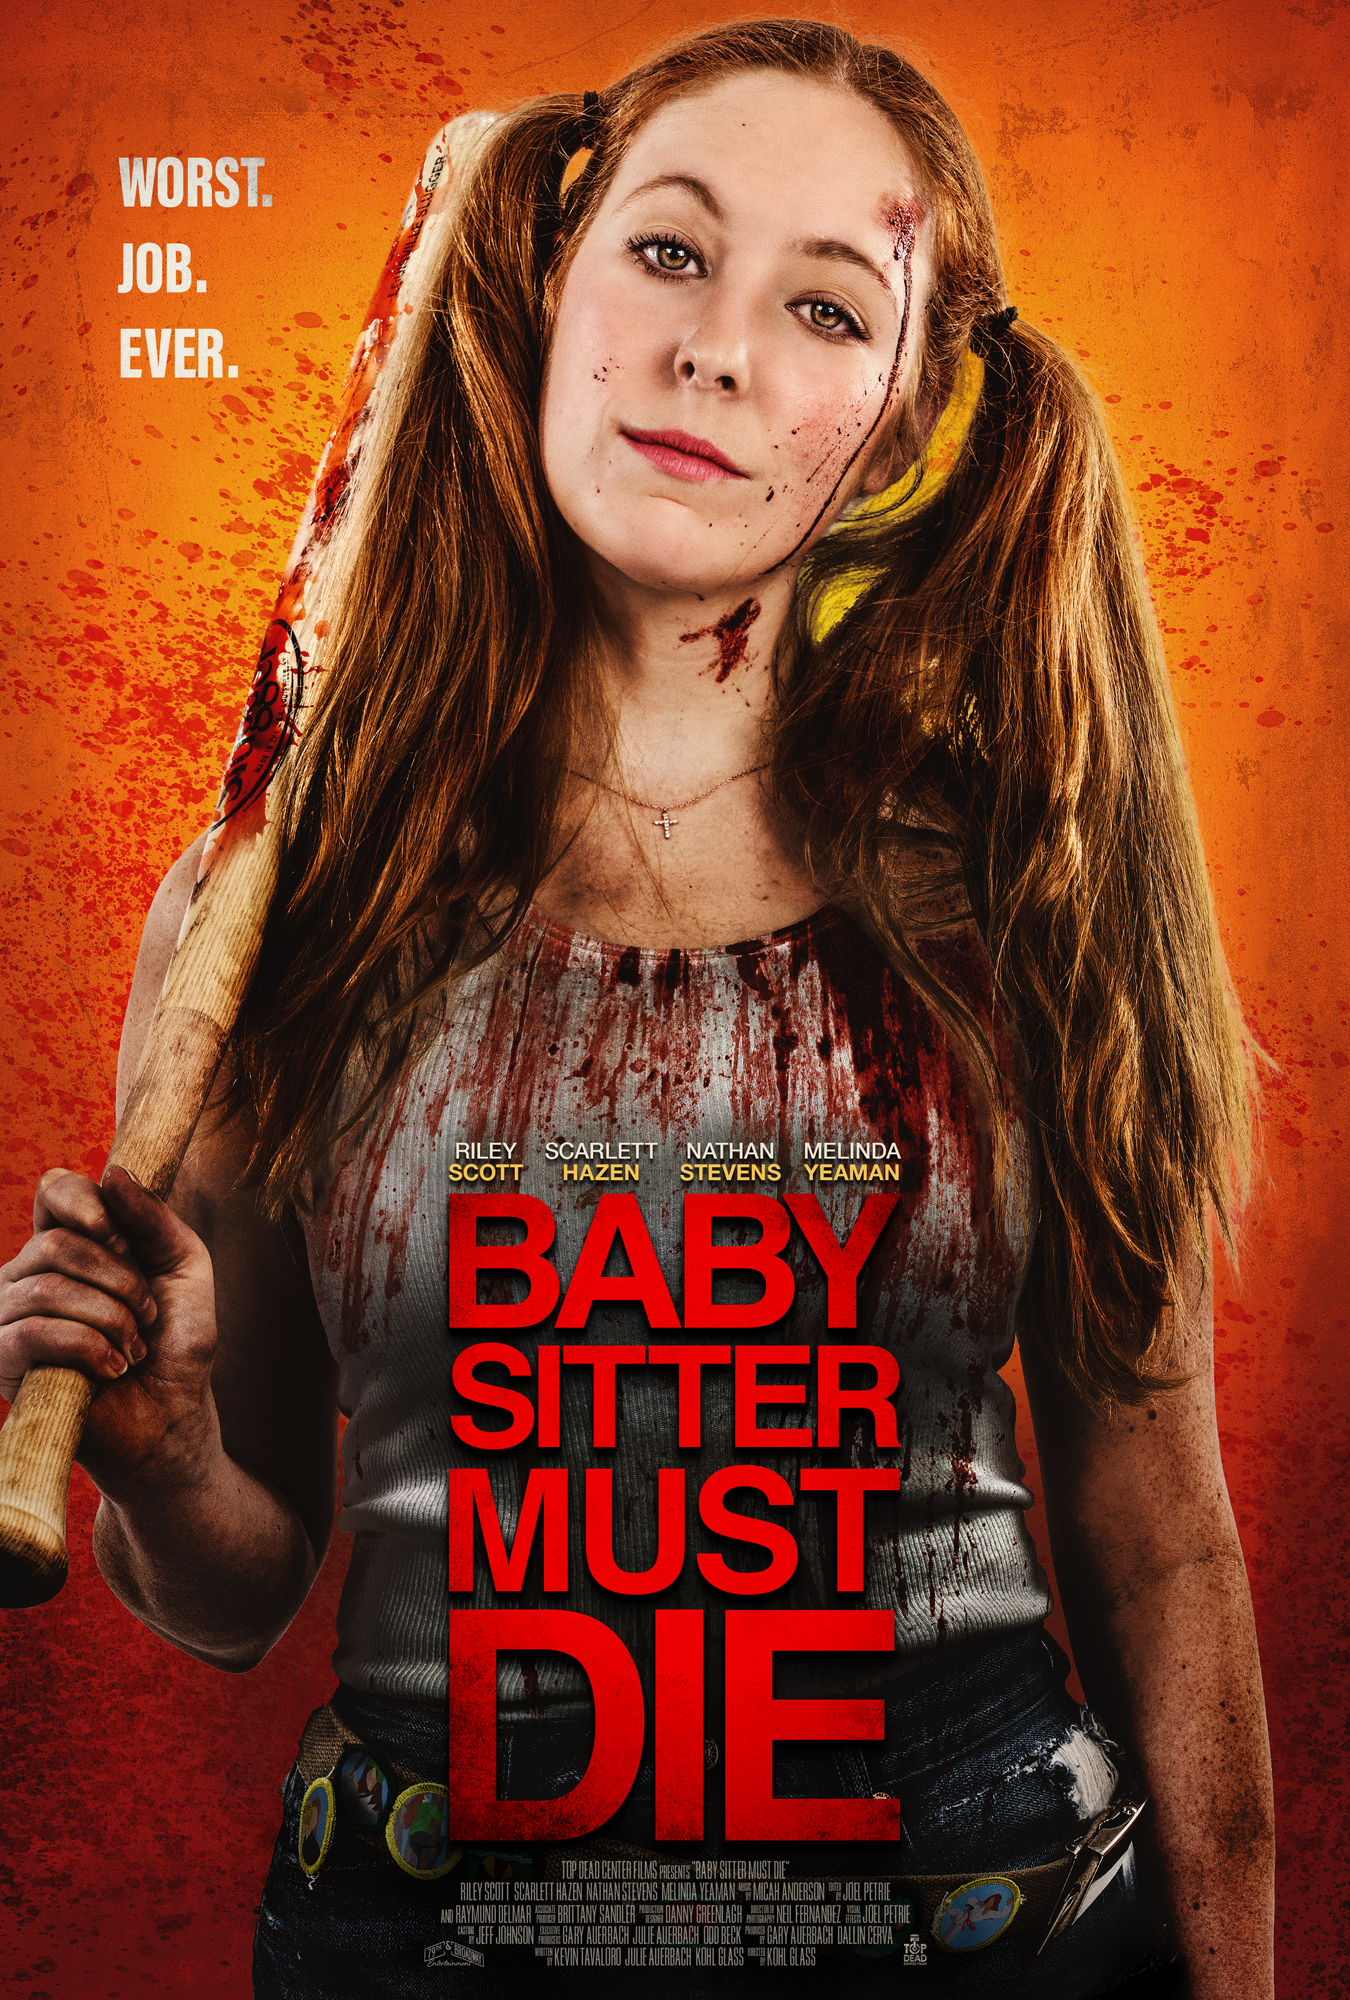 Download Babysitter Must Die (2020) WebRip 720p Dual Audio [Hindi (Voice Over) Dubbed + English] [Full Movie] Full Movie Online On 1xcinema.com